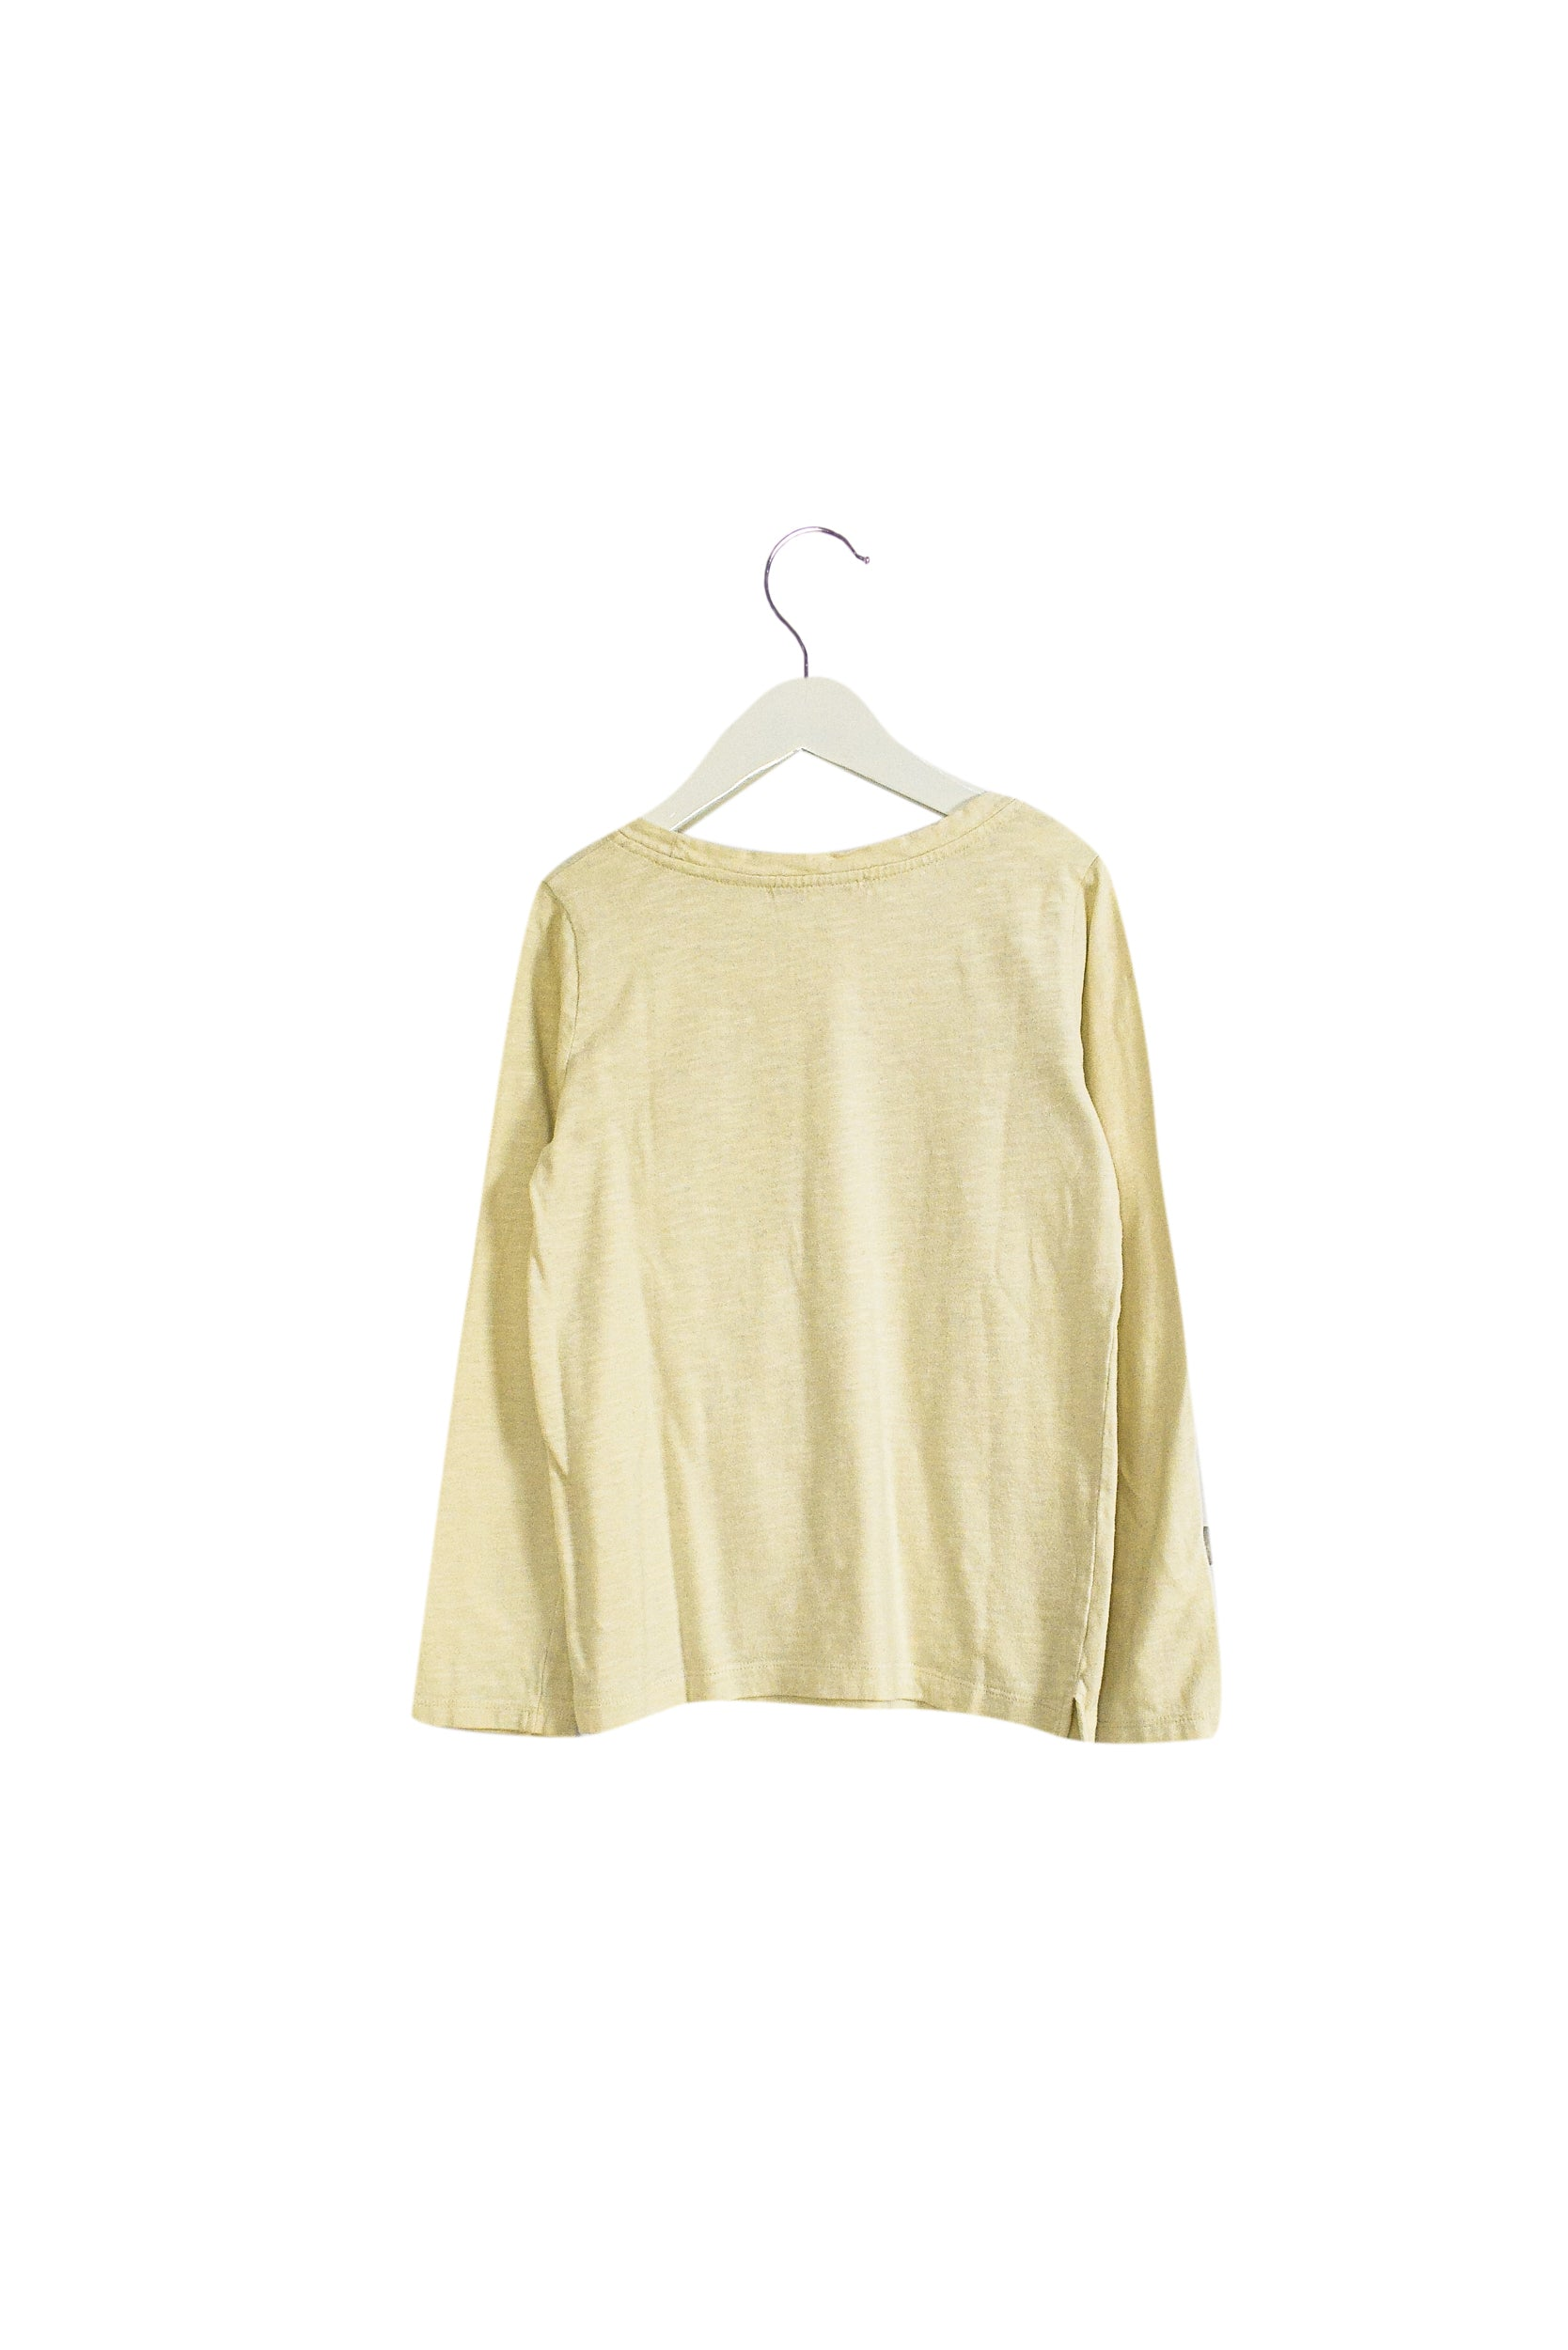 Long Sleeve Top 8Y at Retykle